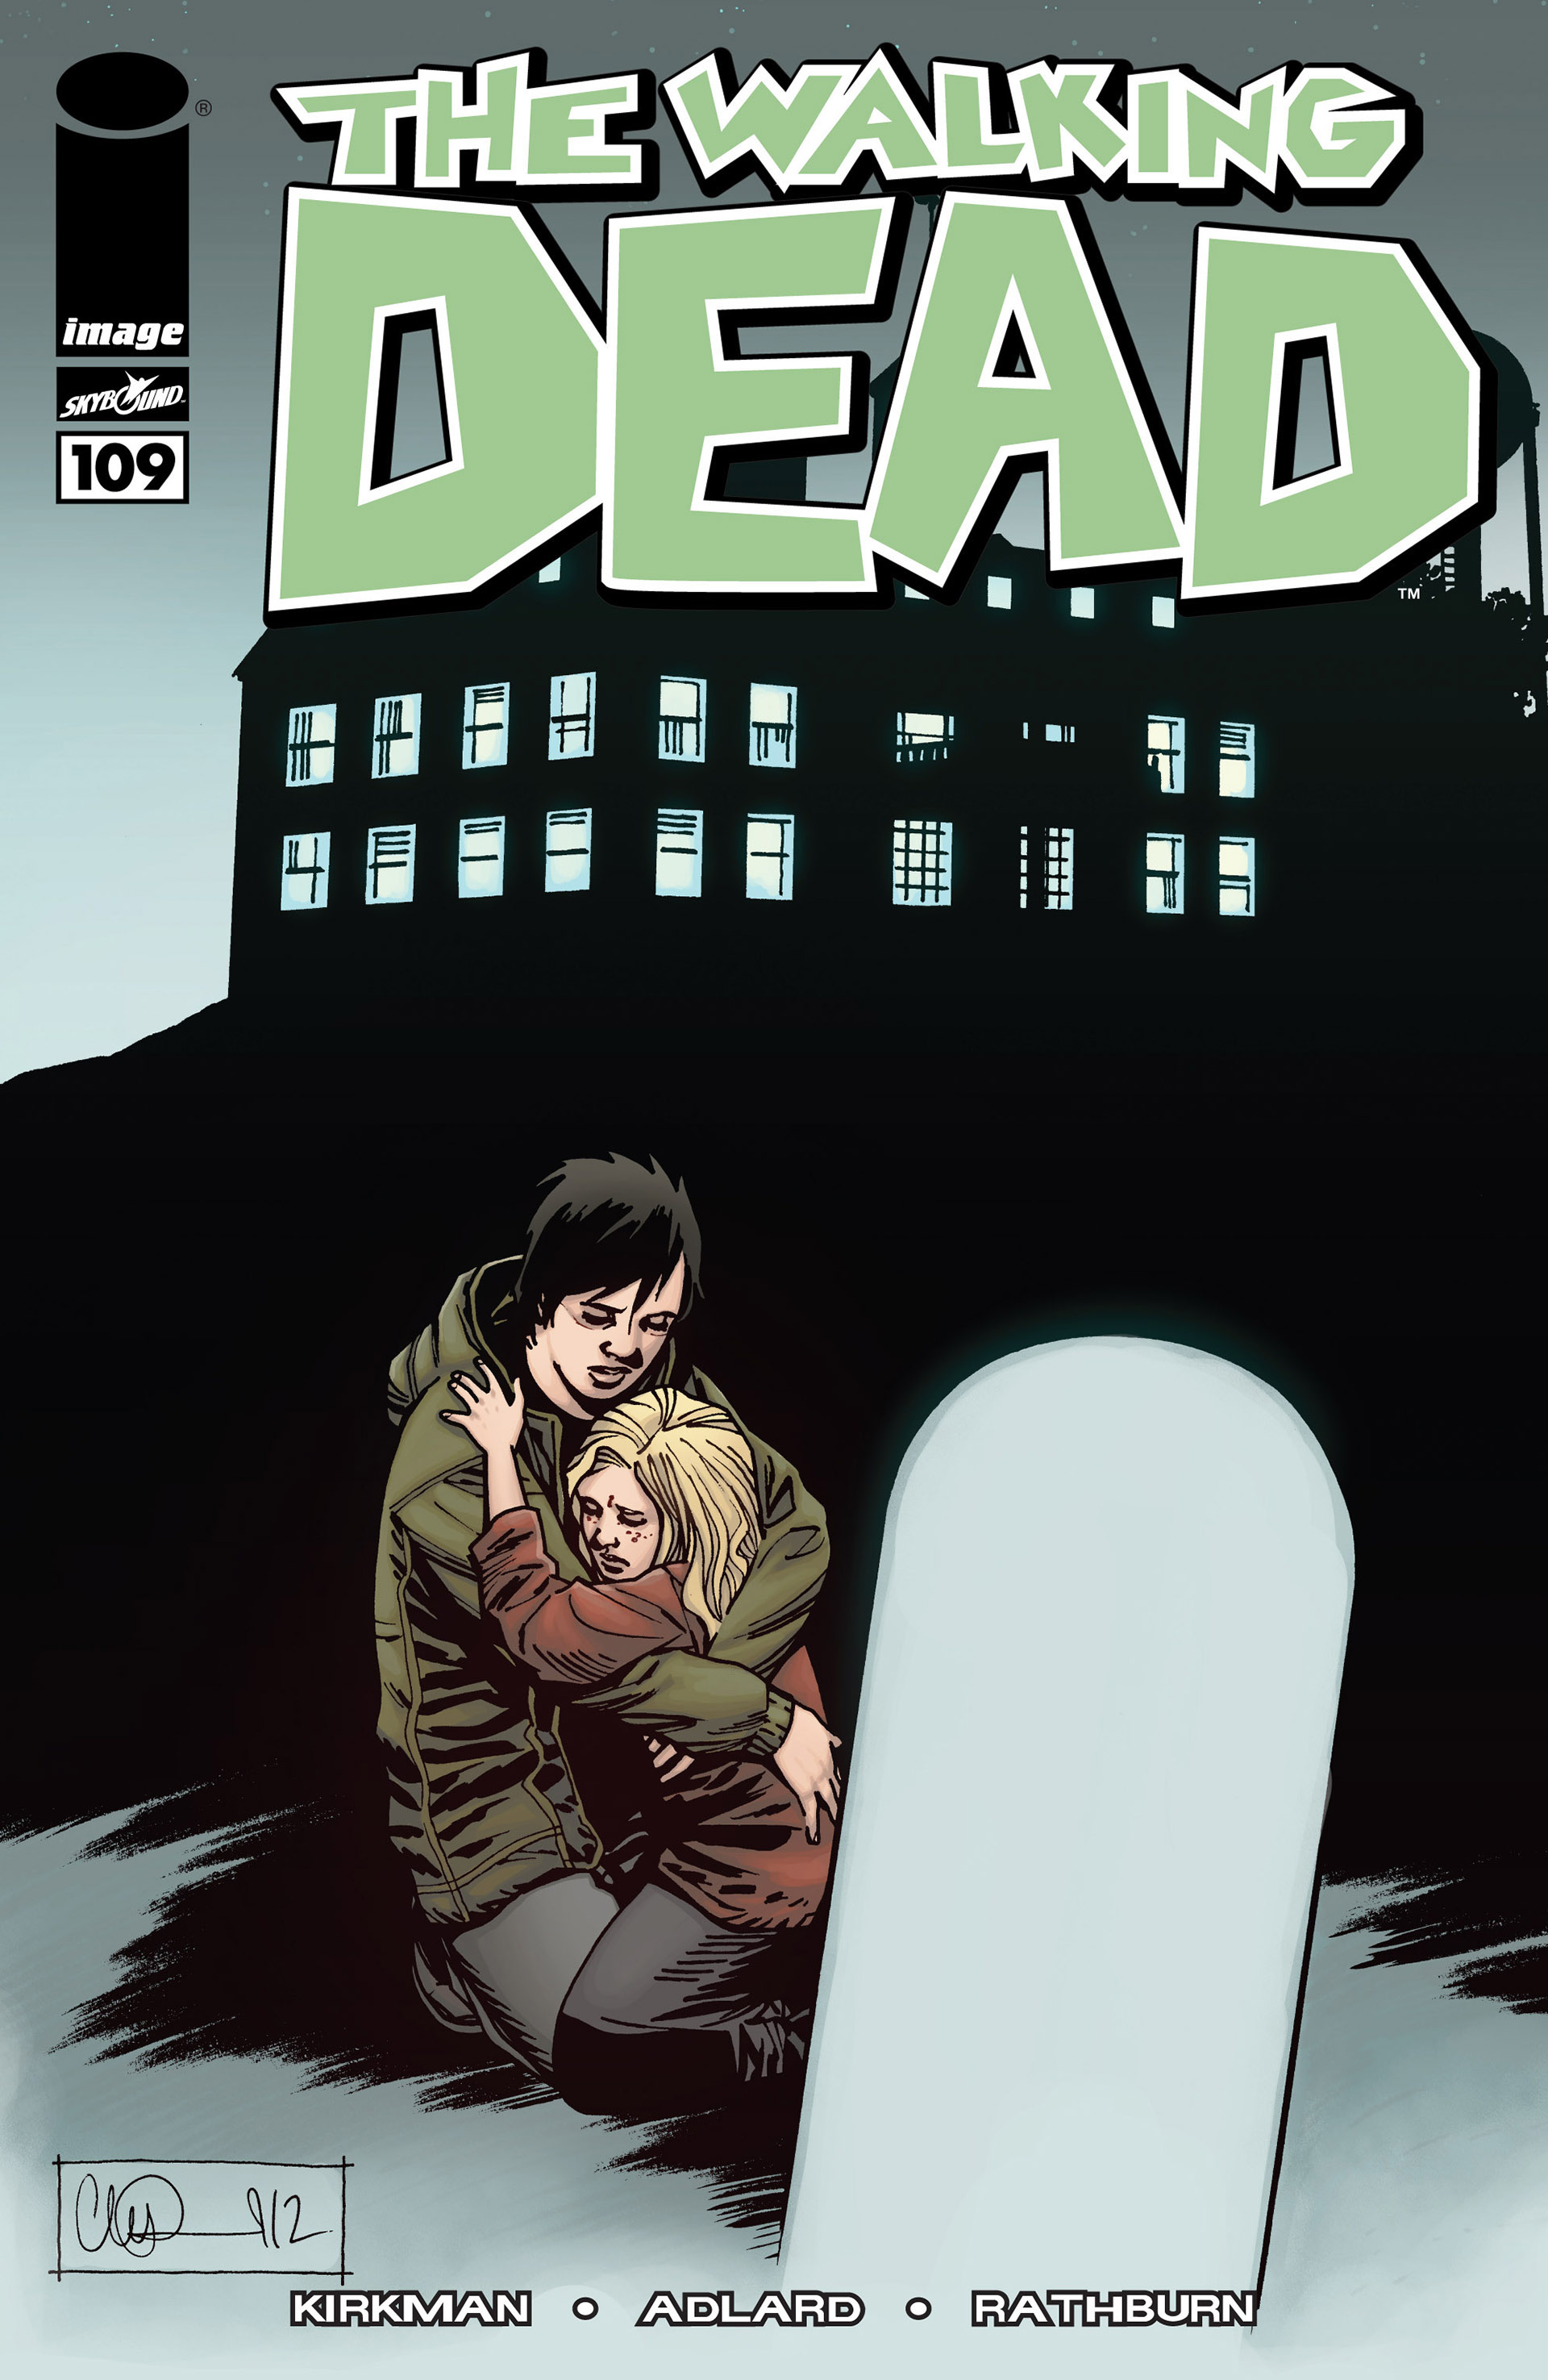 The Walking Dead 109 Page 1